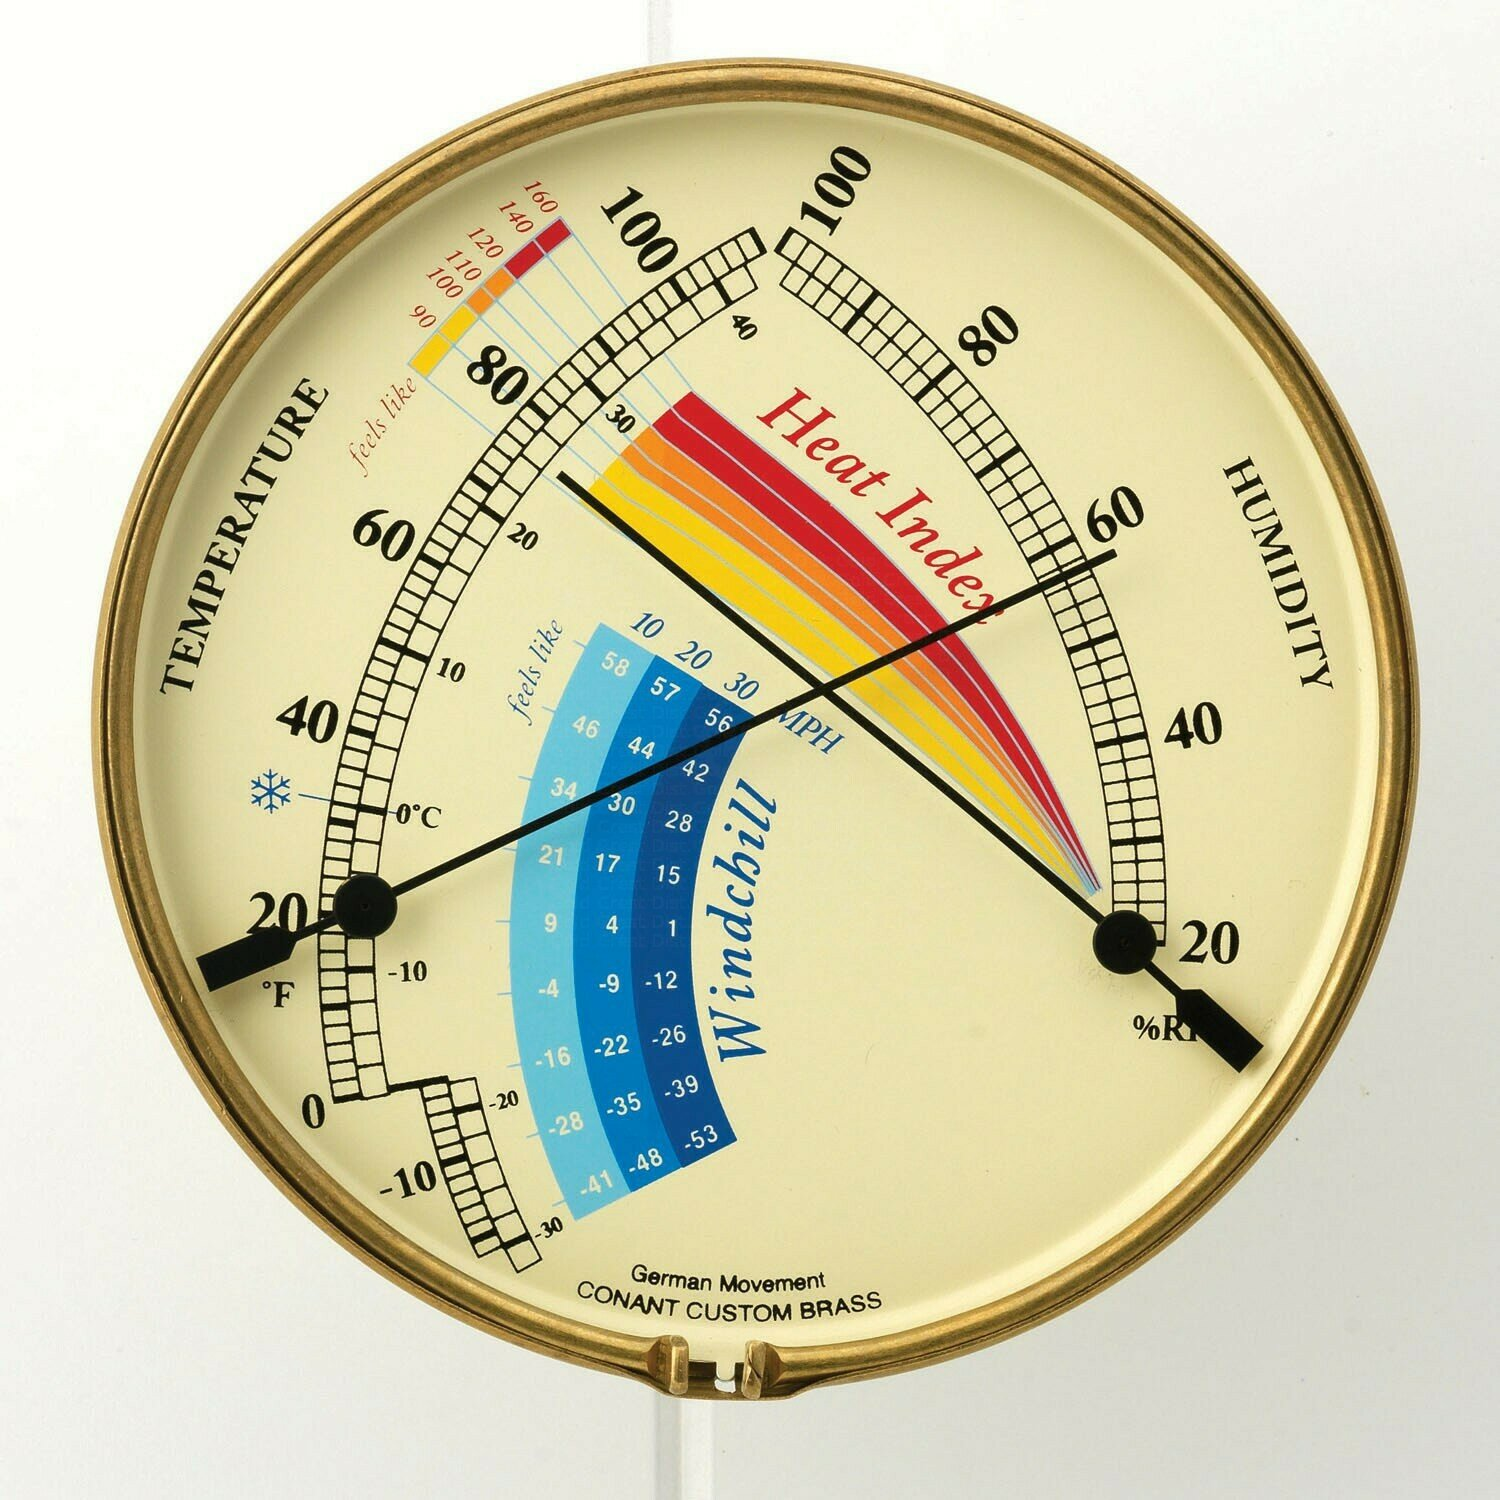 Veranda Heat Index & Windchill Gauge